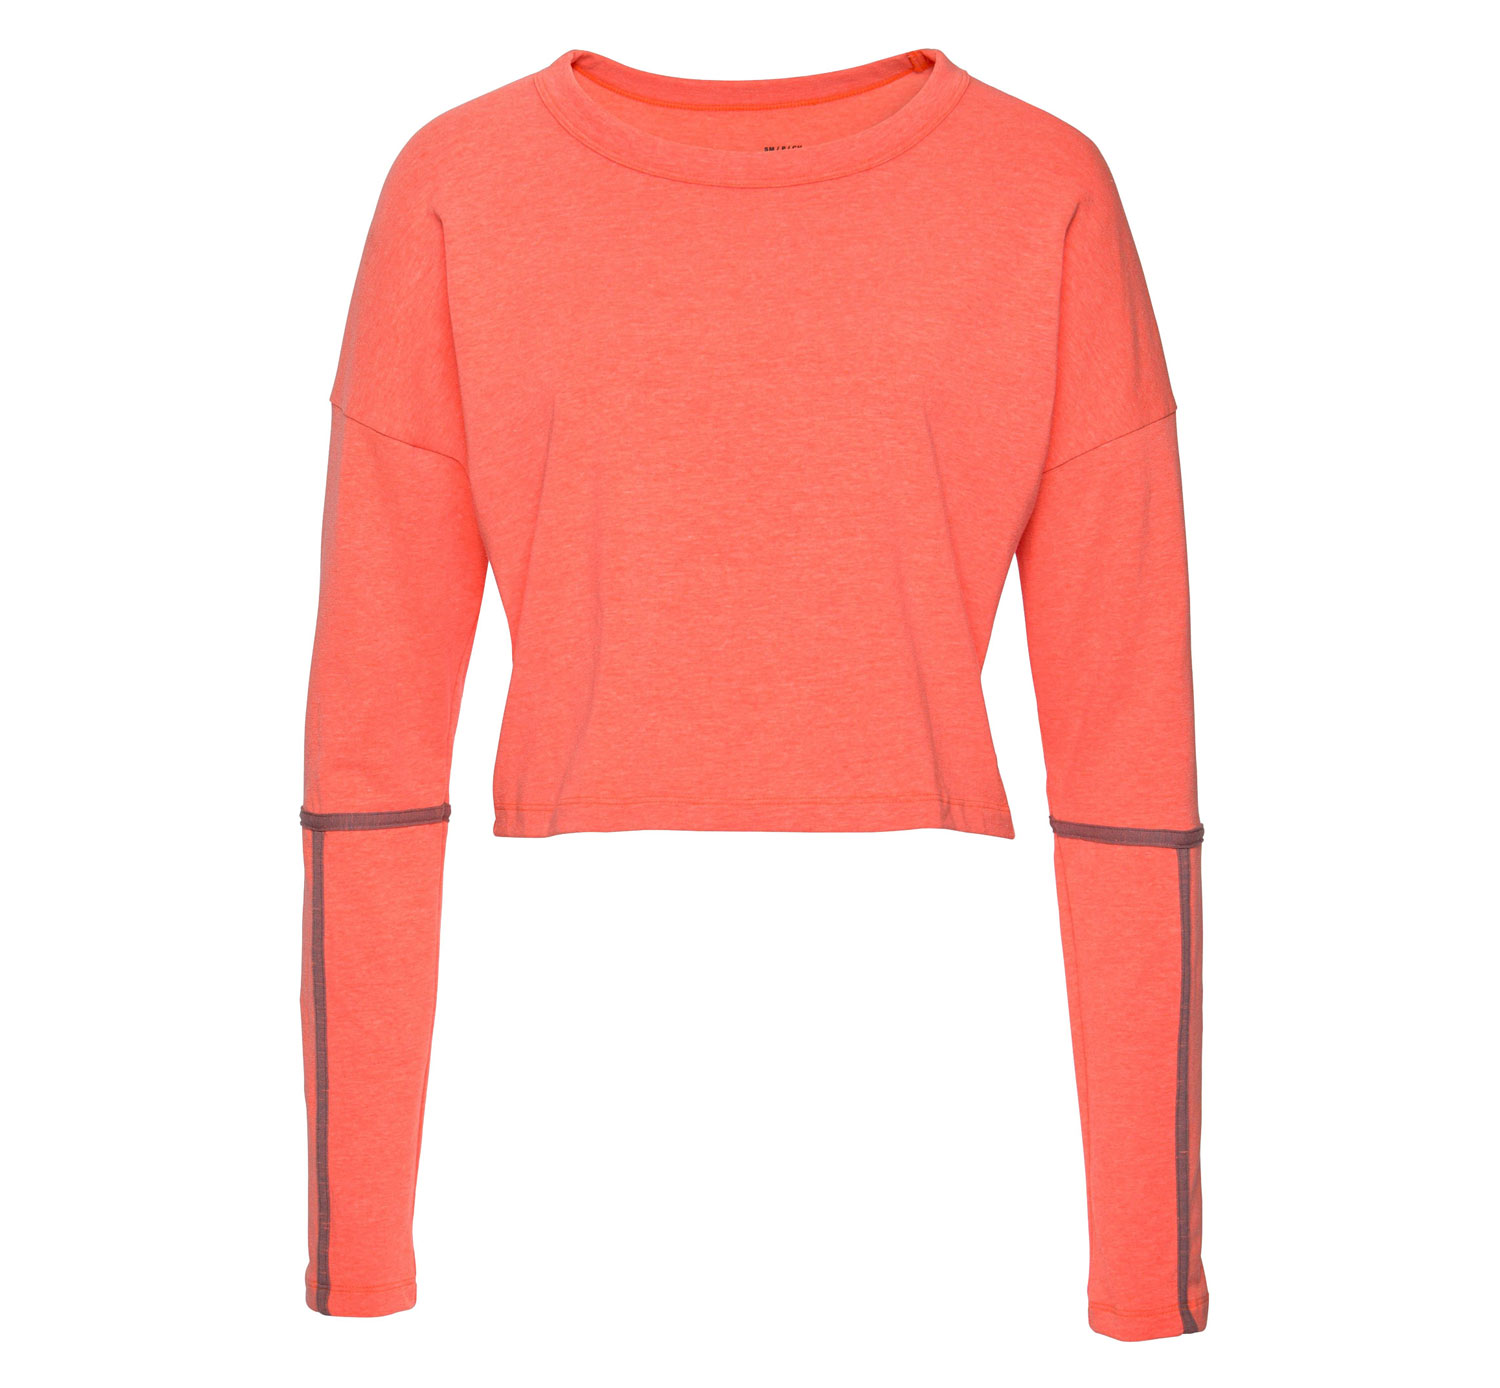 Underarmour Women's UA Lighter Longer Cropped Crew, £36